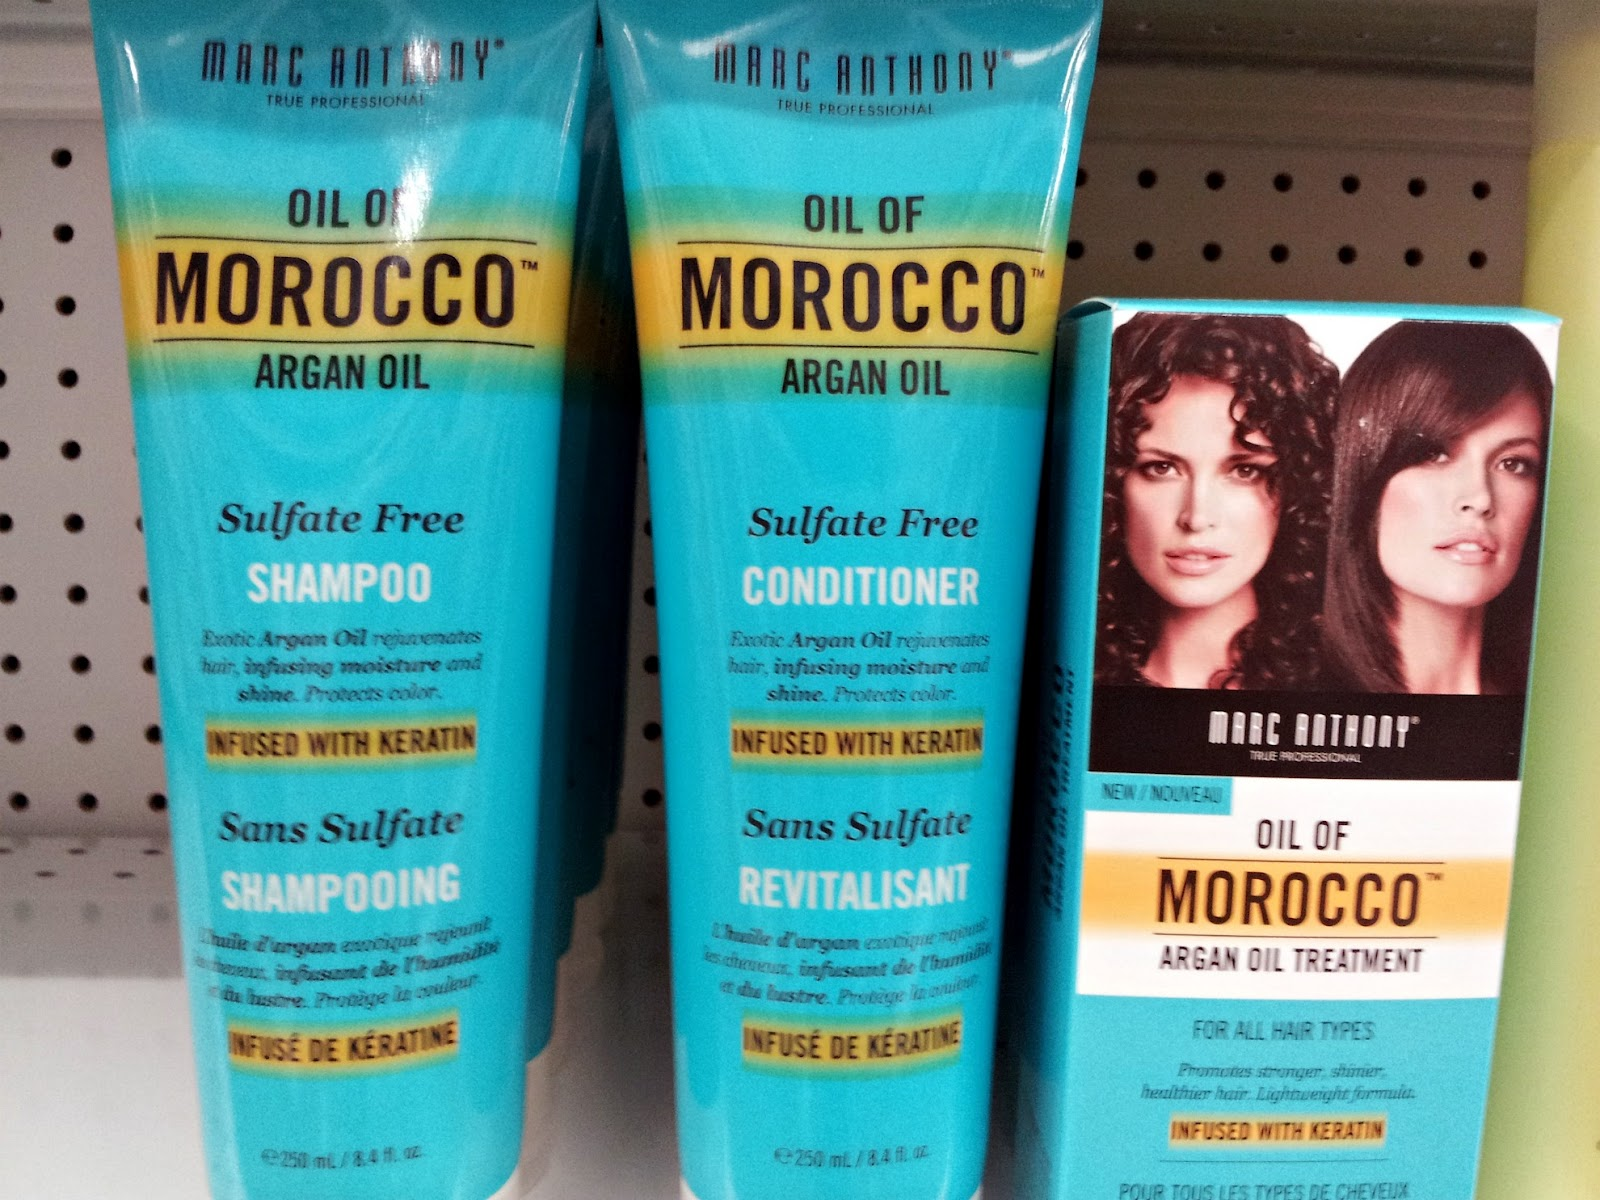 Spotted in Store- New Marc Anthony Hair- Oil of Morocco, Bye Bye Frizz